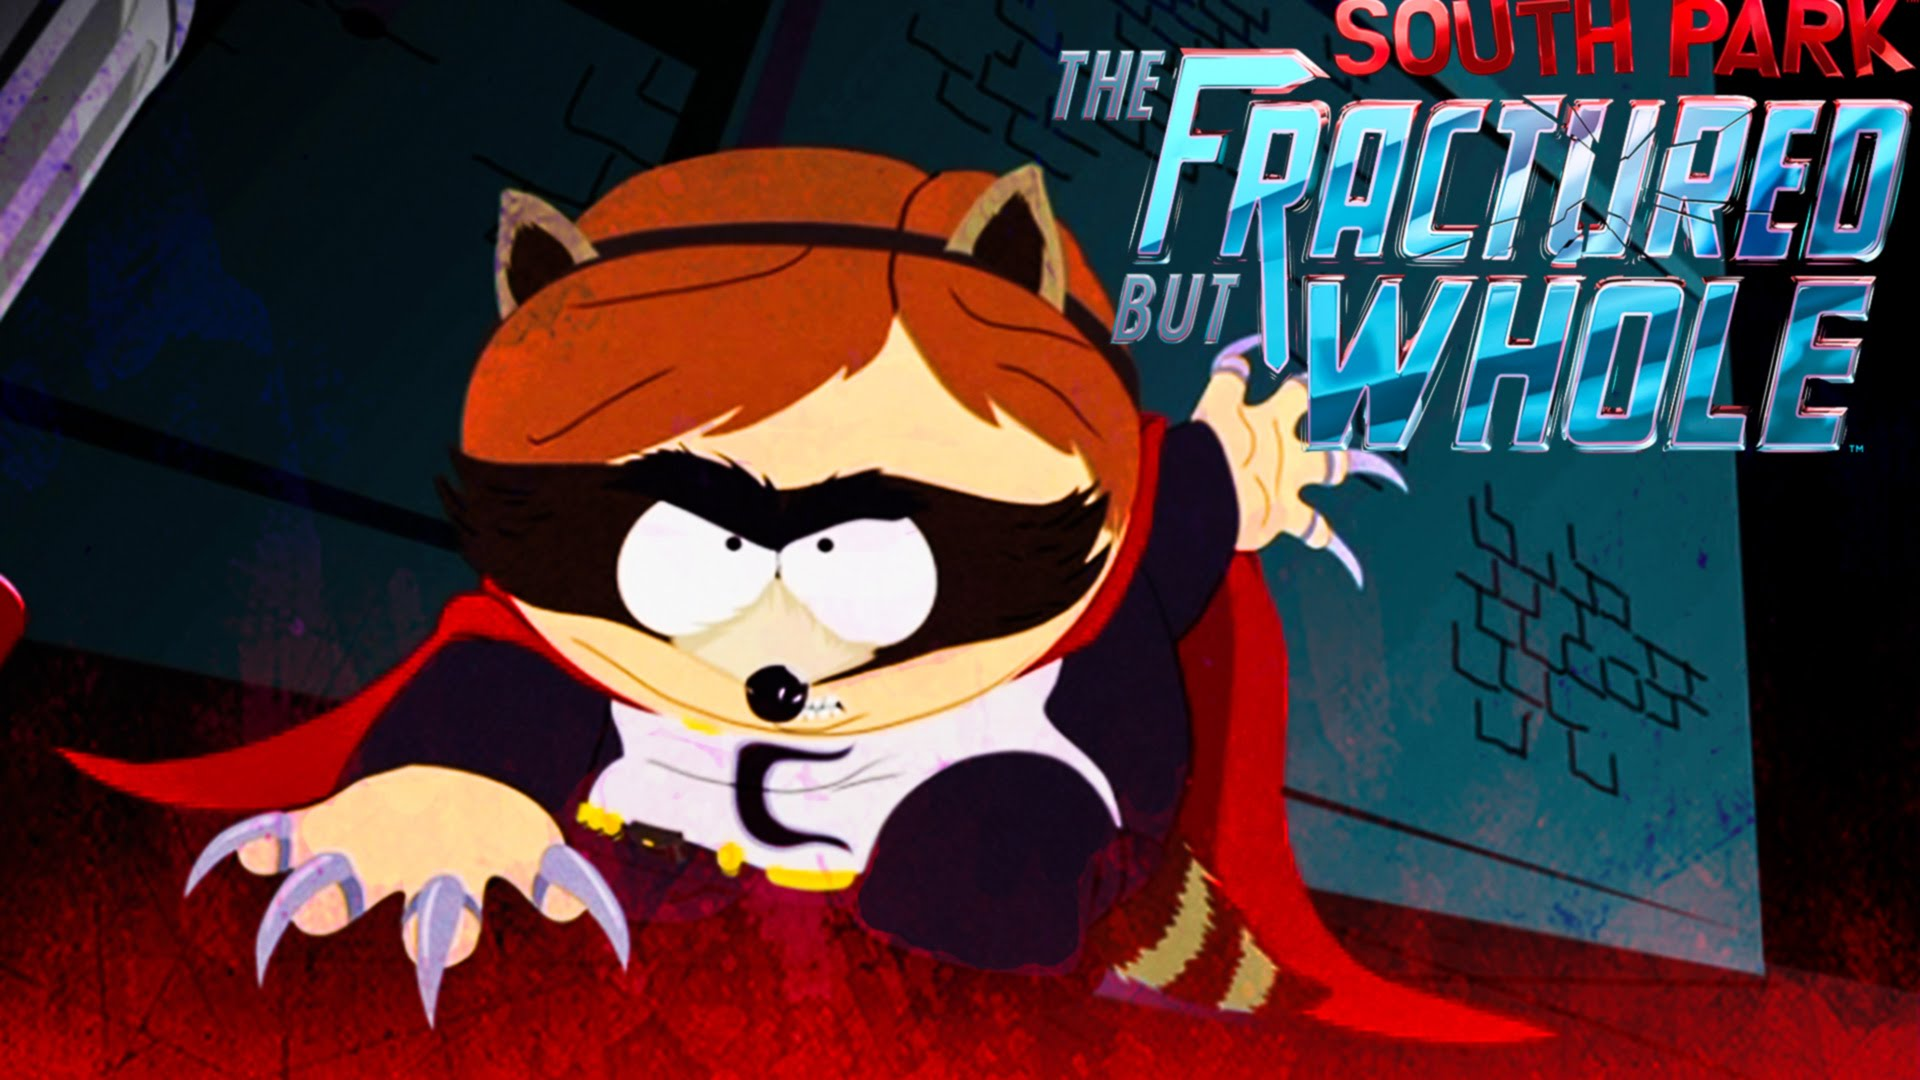 South Park The Fractured But Whole HD Wallpaper 9   1920 X 1080 1920x1080